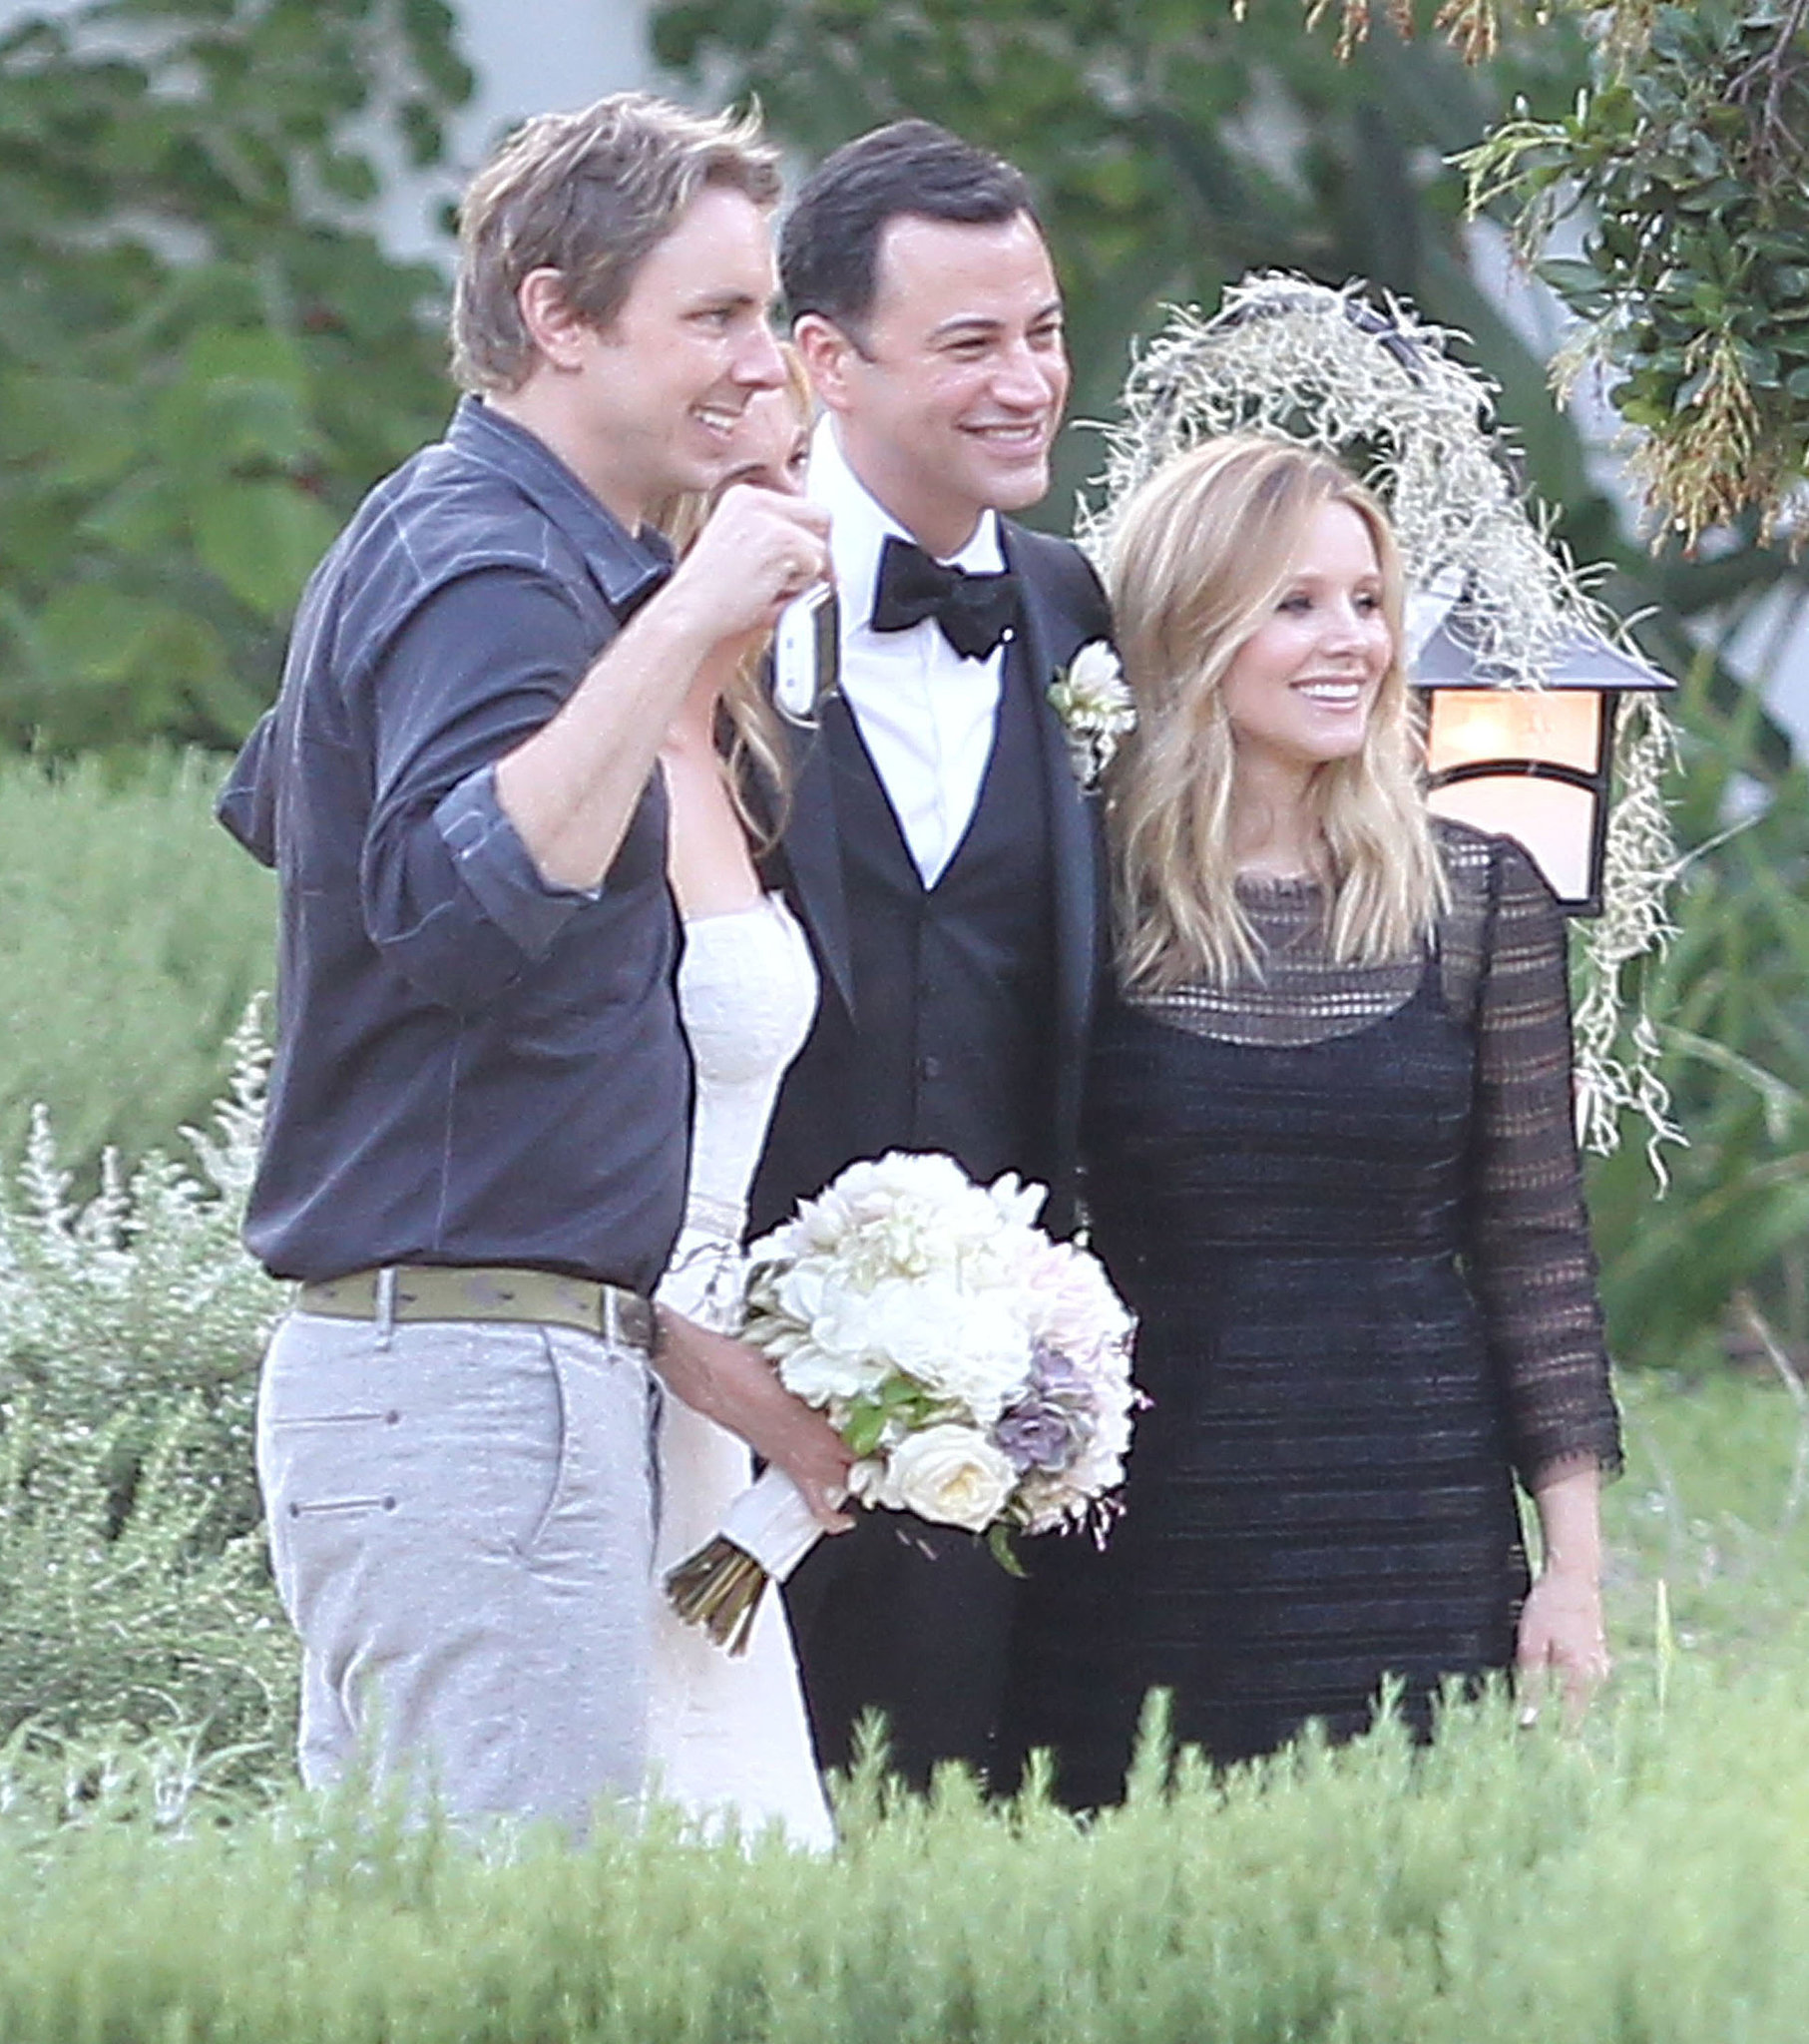 Kristen Bell and Dax Shepard posed with Jimmy Kimmel at his July 2013 wedding in Ojai, CA. If you're looking for more wedding inspiration, look no further — we've got you covered with decor, dresses, beauty, and more right here!